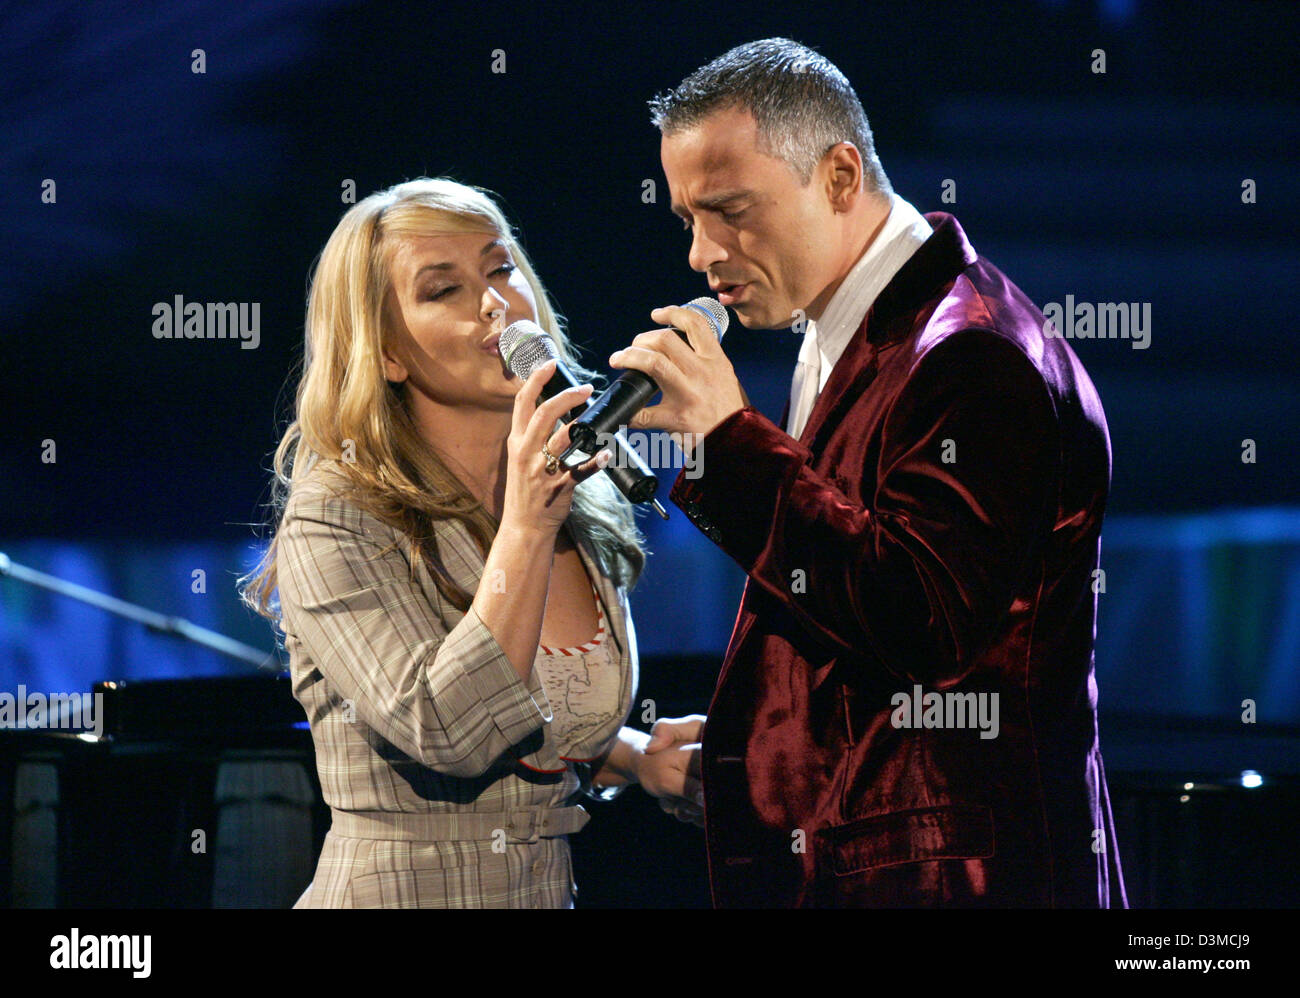 Italian Singer Eros Rmazotti R And Us Singer Anastacia Perform Together At The German Tv Show Wetten Dass Bet That In The Salzburg Arena In